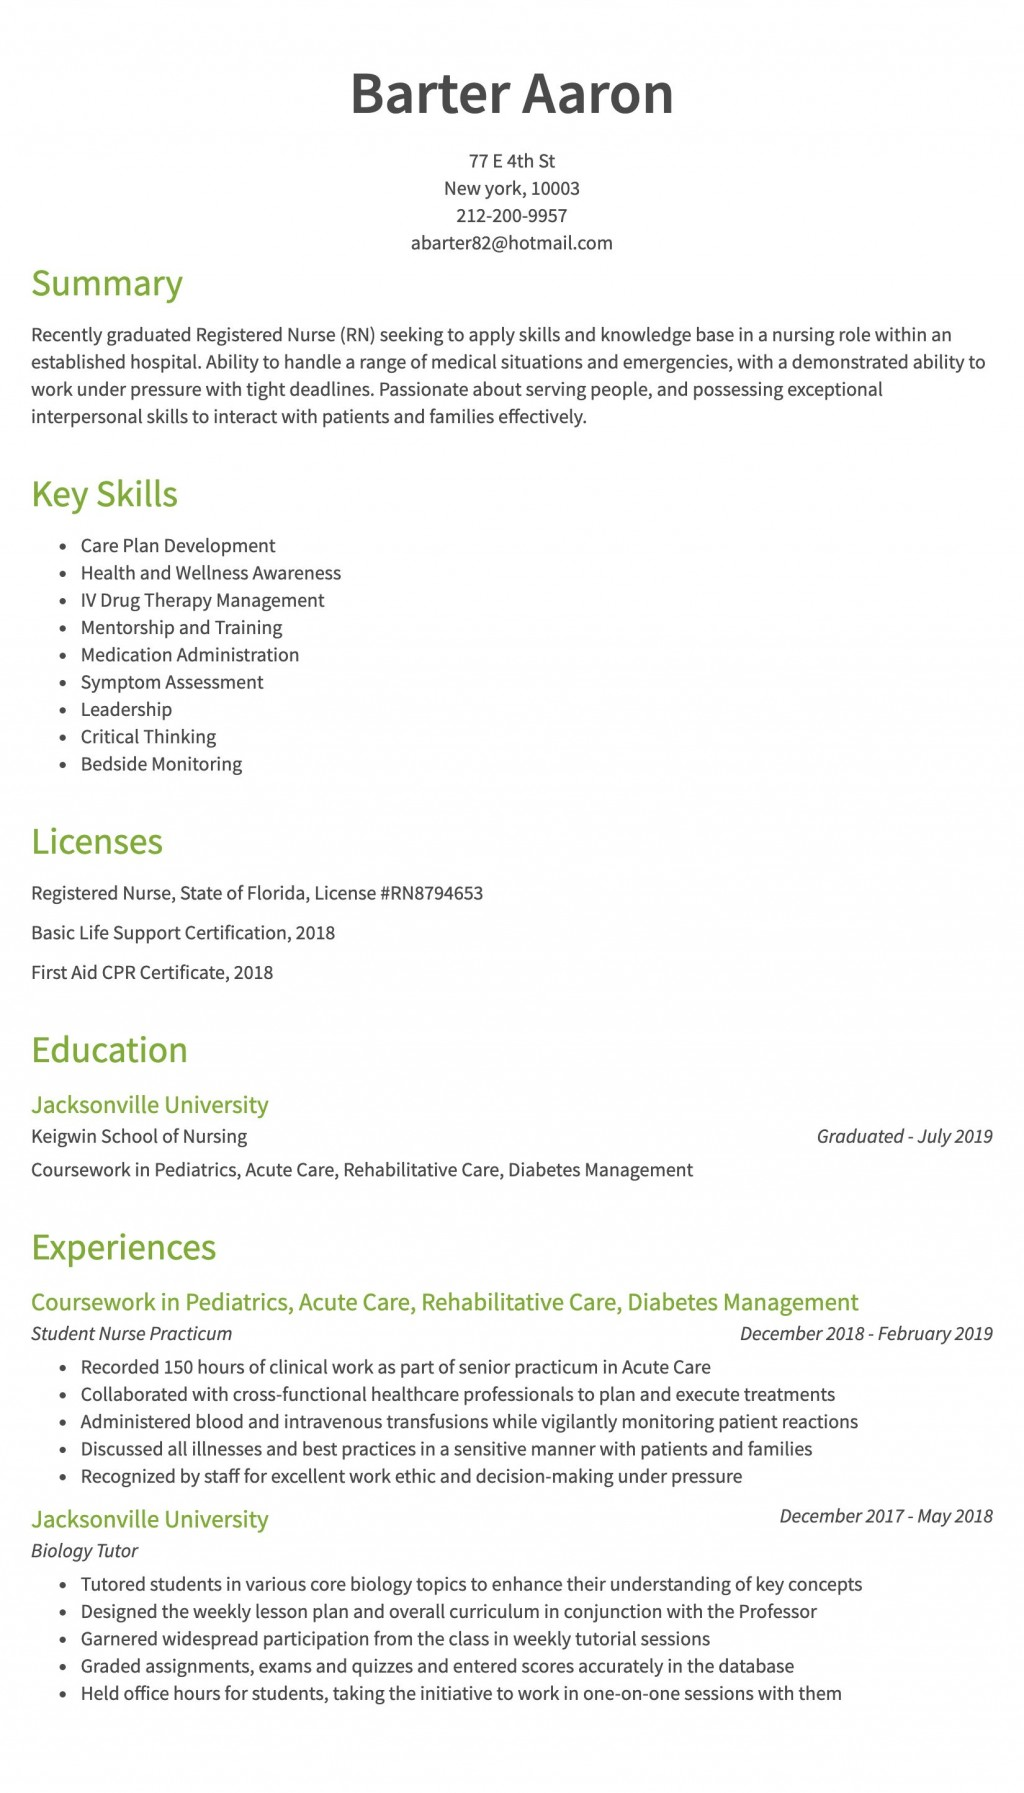 005 Phenomenal New Rn Resume Template High Resolution Large